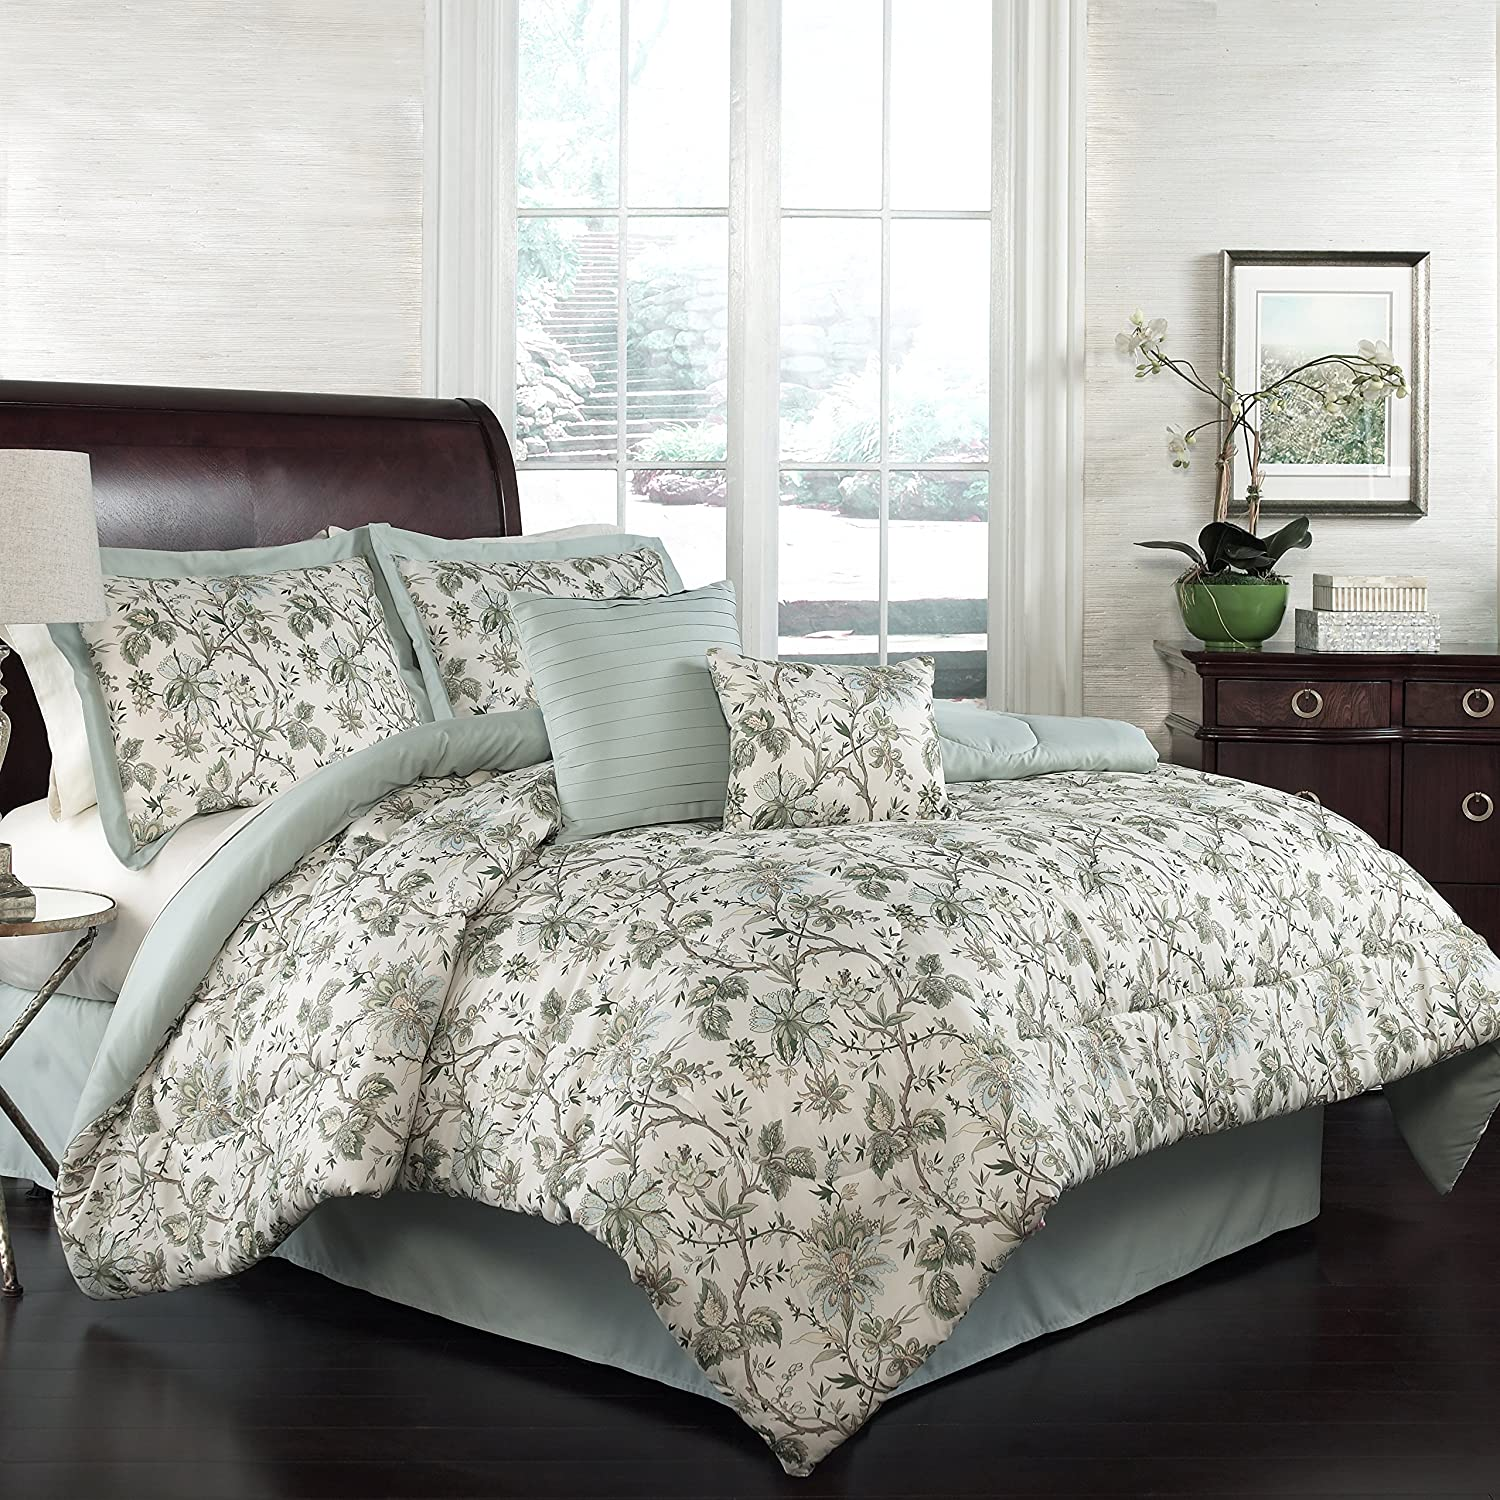 amazoncom traditions by waverly felicite 6 piece comforter collection king home u0026 kitchen - Waverly Bedding